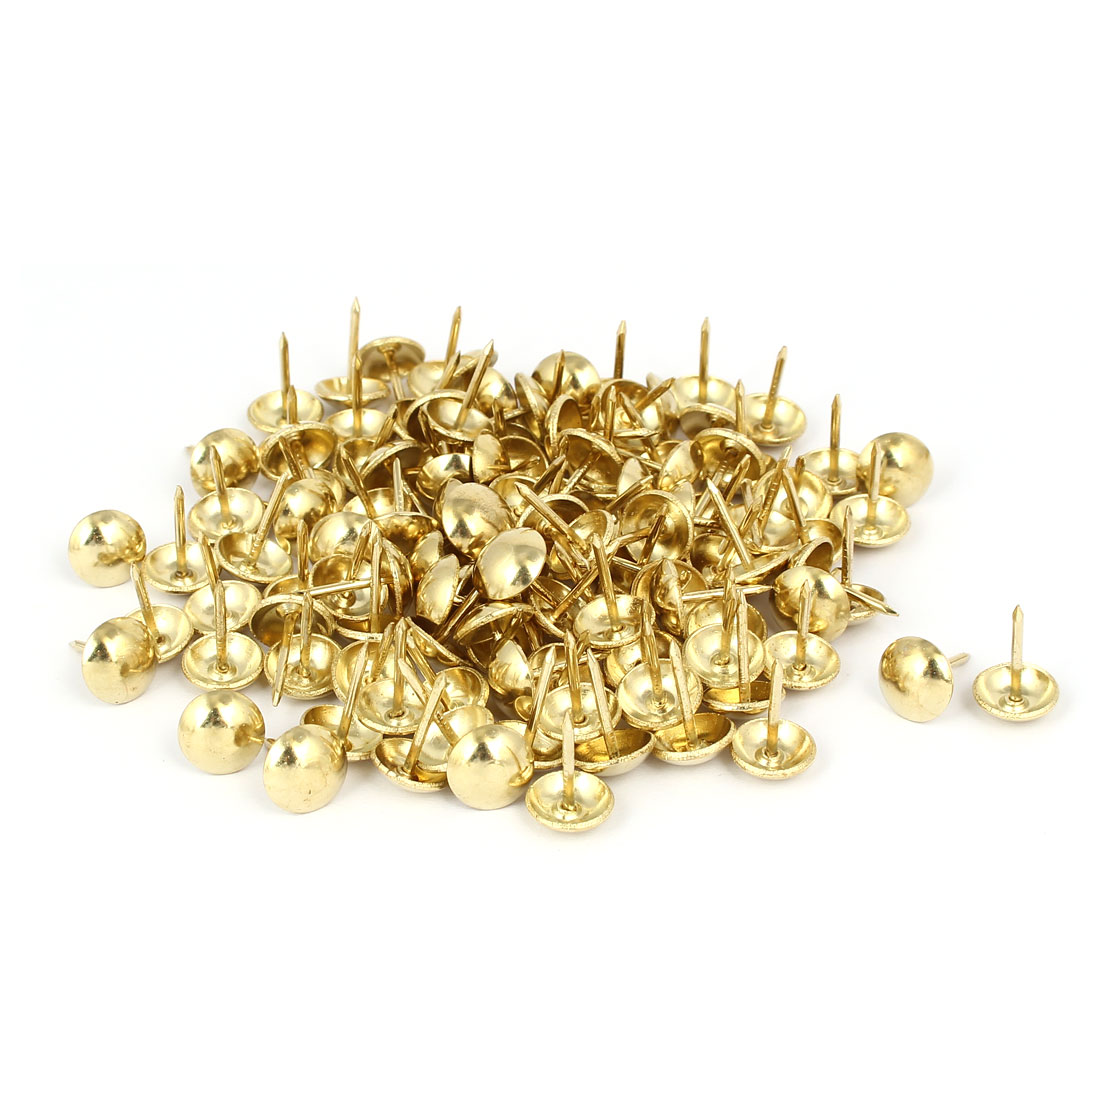 "Metal Round Head Upholstery Tack Nail Gold Tone 7/16"" Dia 120pcs for Home Decor"